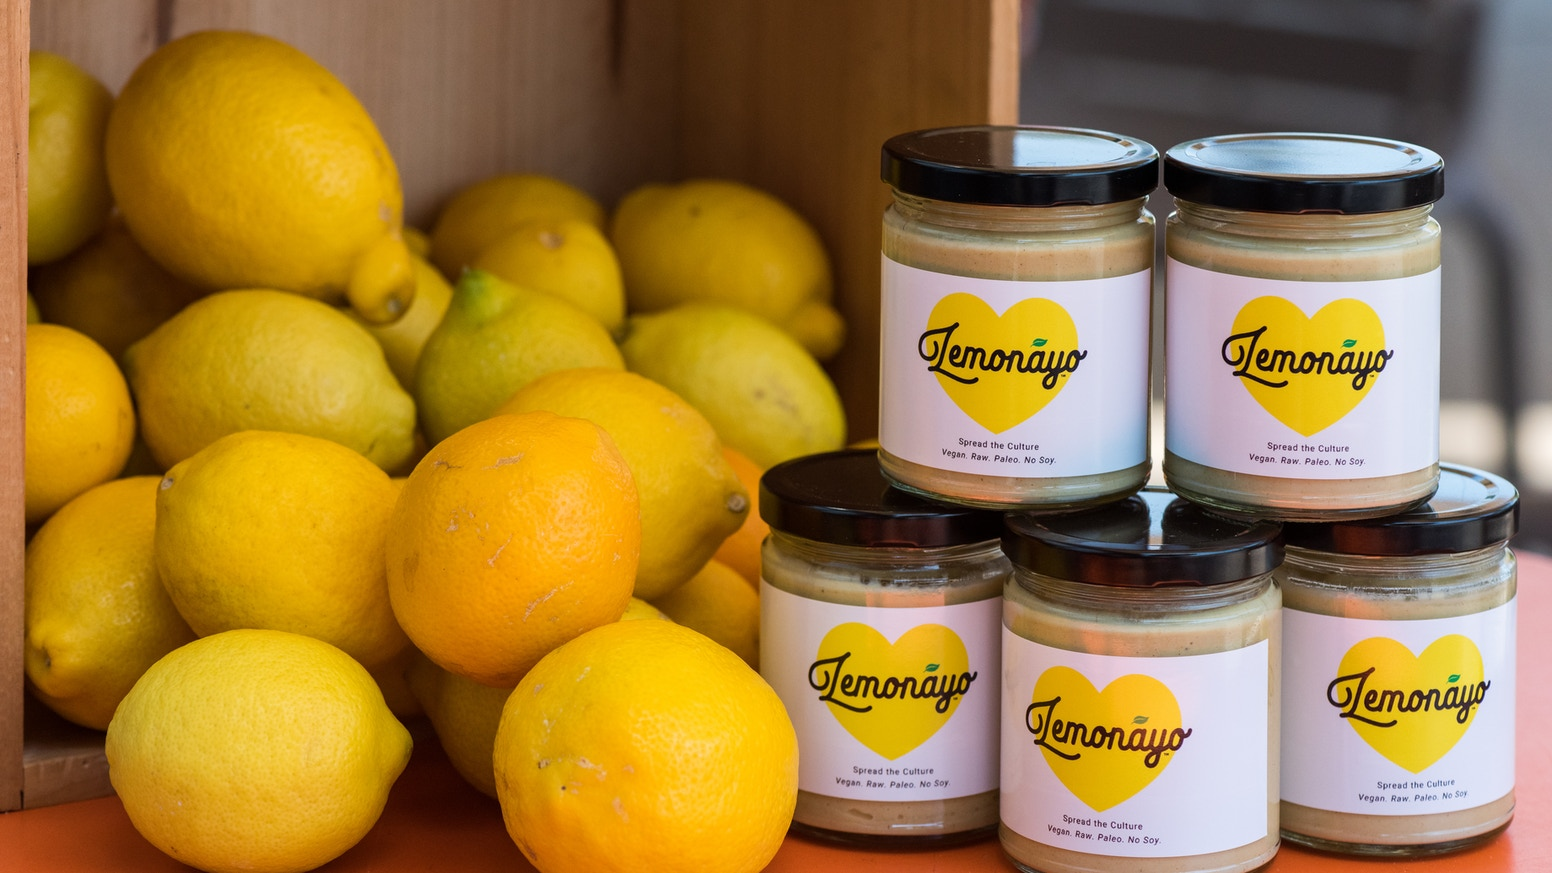 A tasty fermented, cultured lemon spread that everybody can love whether they are vegan, paleo, allergic to soy, nuts, or gluten.